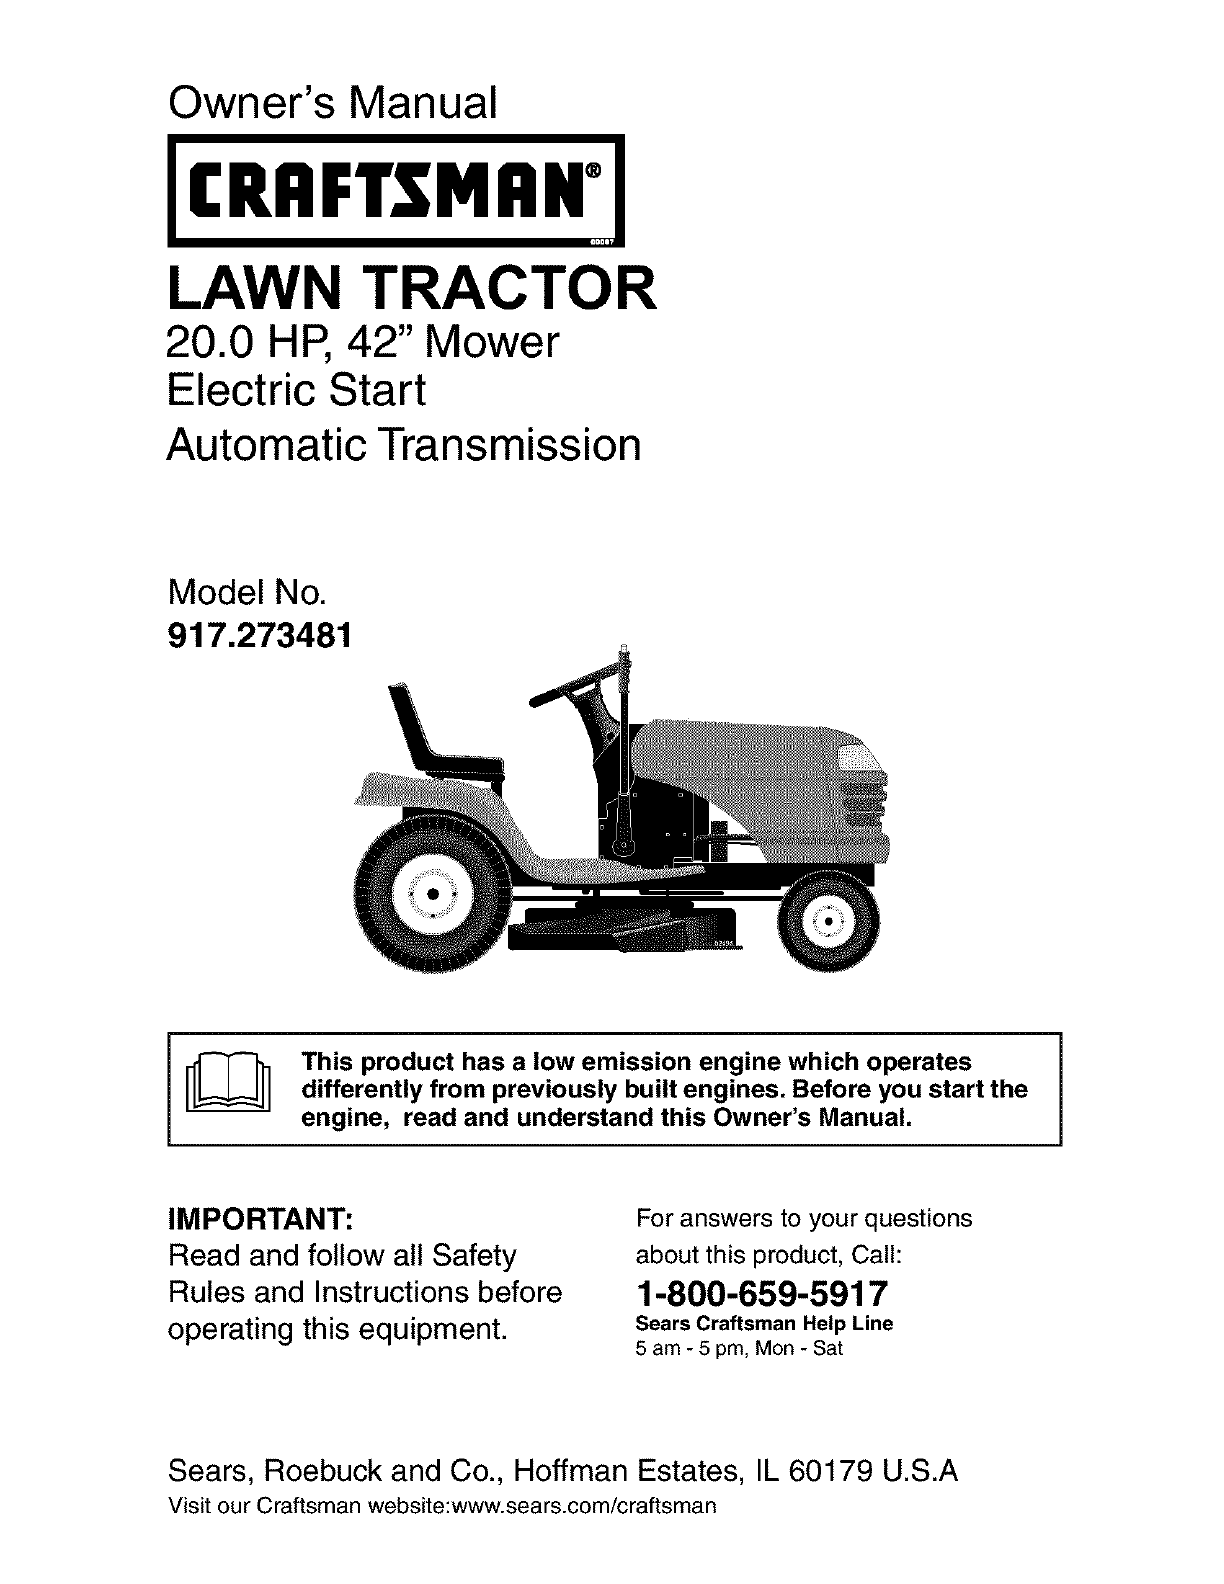 Sears Craftsman Model 917 Mower : Craftsman lawn mower user guide manualsonline